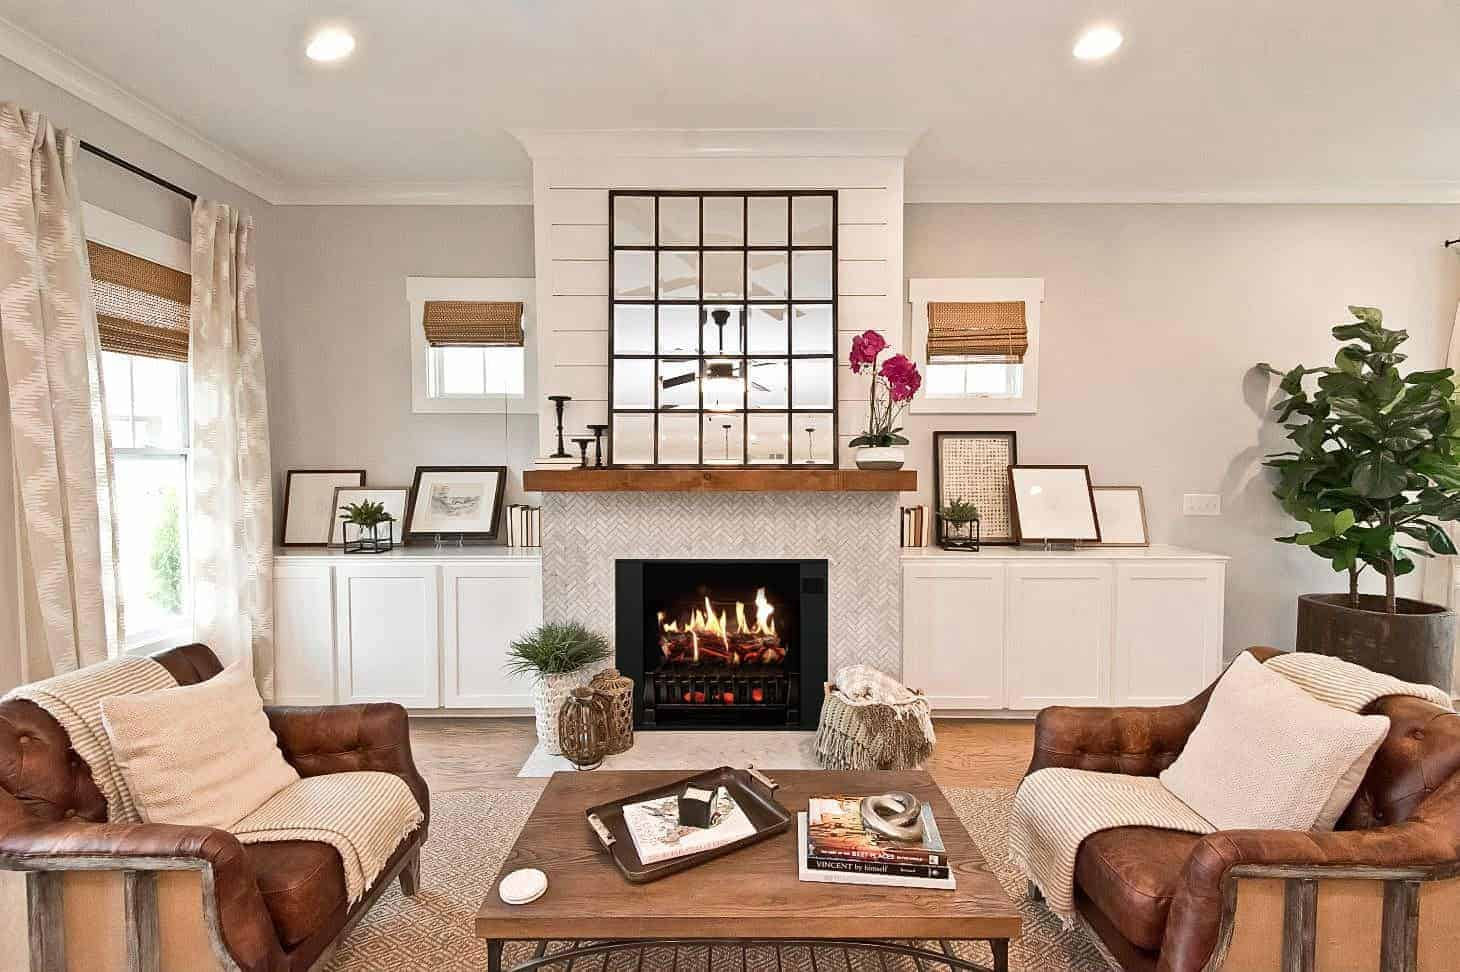 Replacing Conventional with Contemporary: Things for Smarter Home